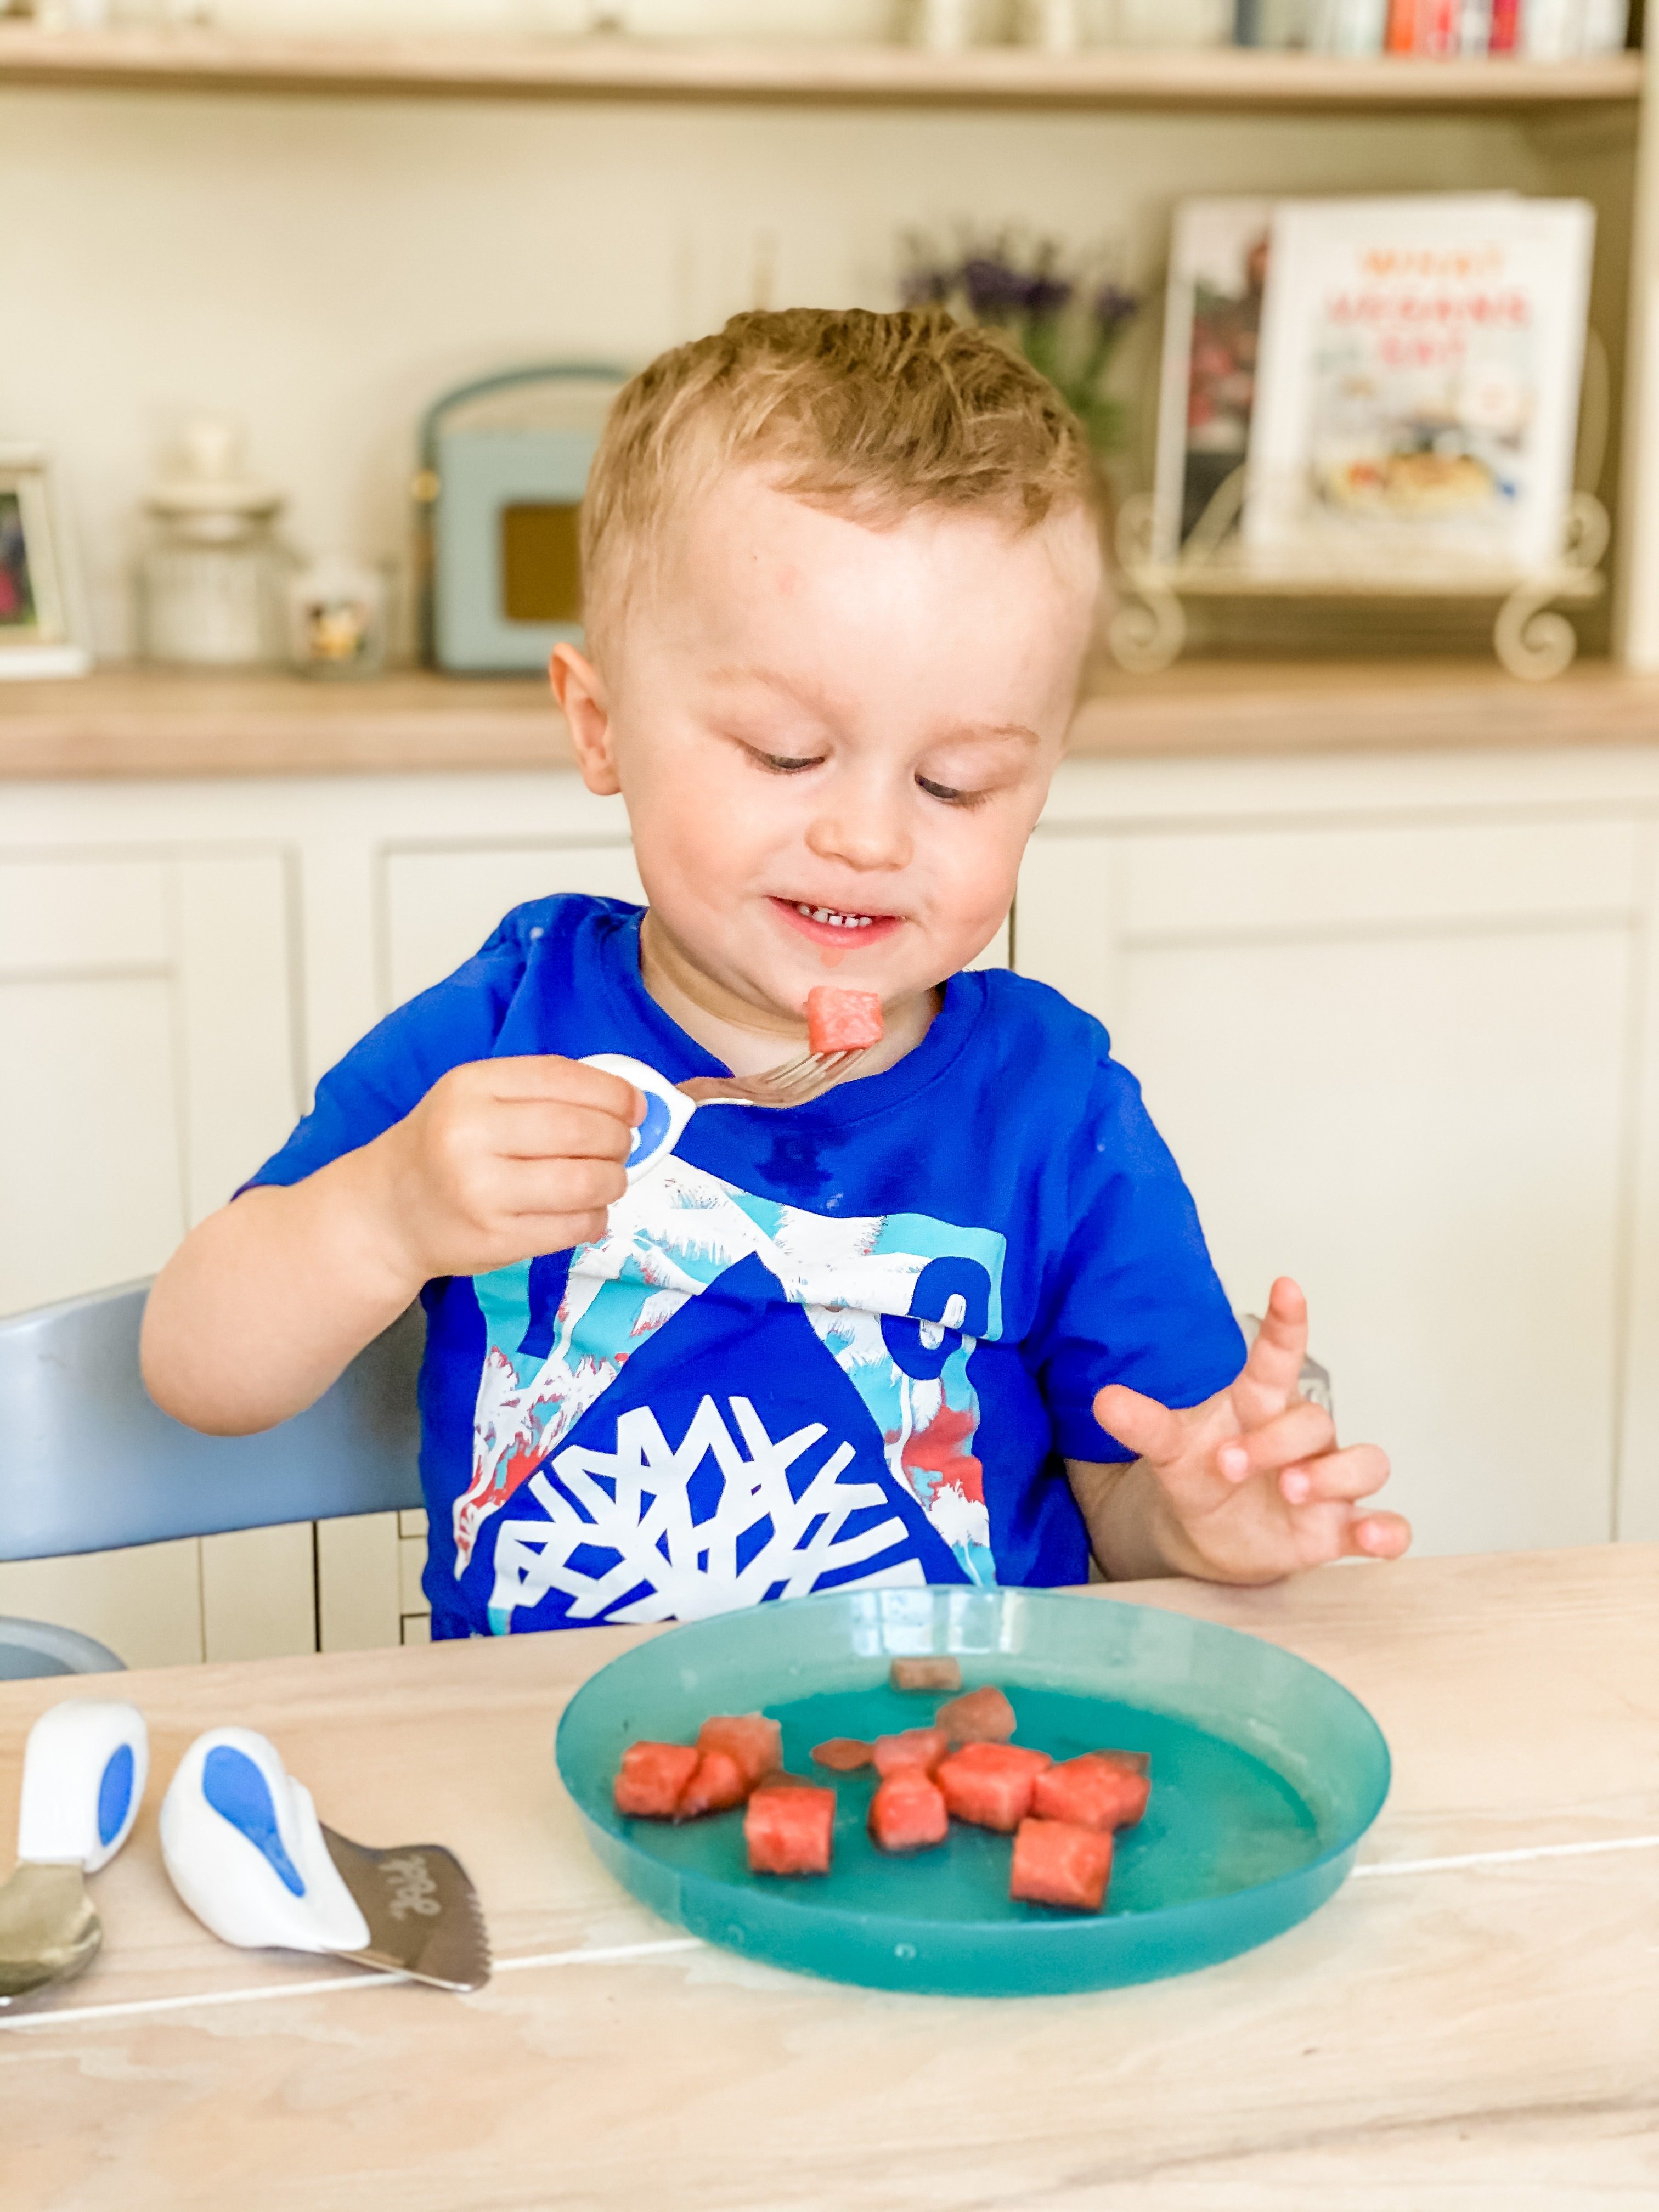 doddl cutlery set baby cutlery toddler cutlery weaning set